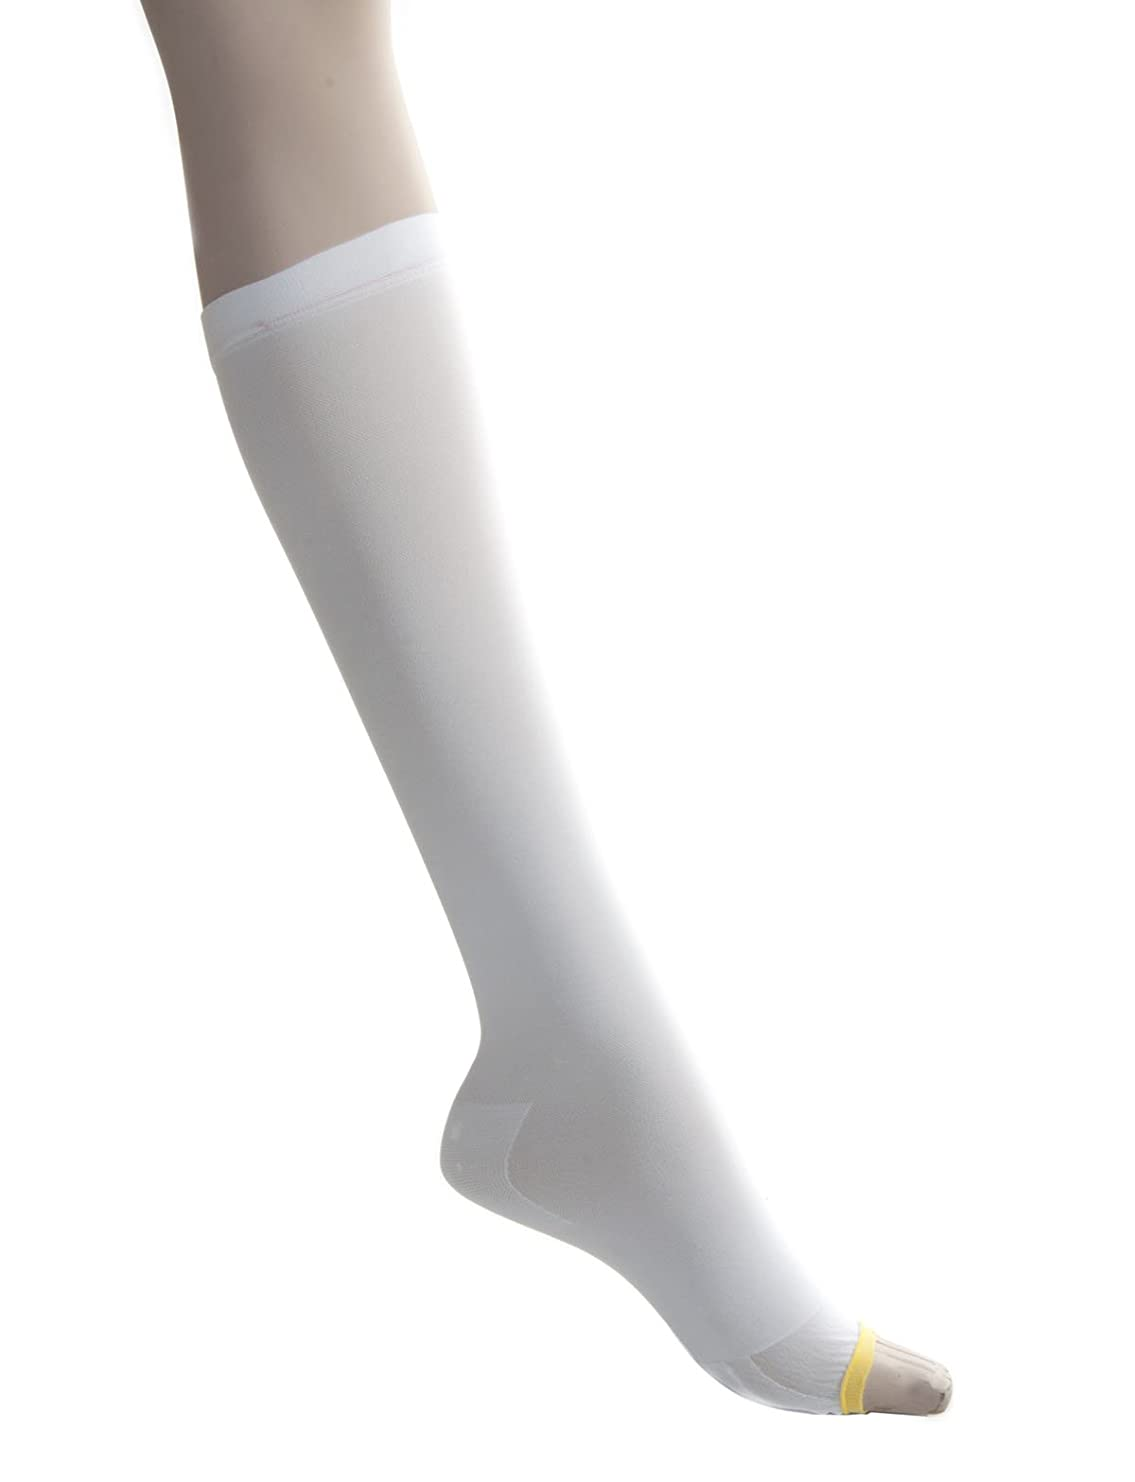 科学的軍団ブランド名Medline MDS160688 EMS Latex Free Knee-Length Anti-Embolism Stocking, X-Large Long, White by Medline